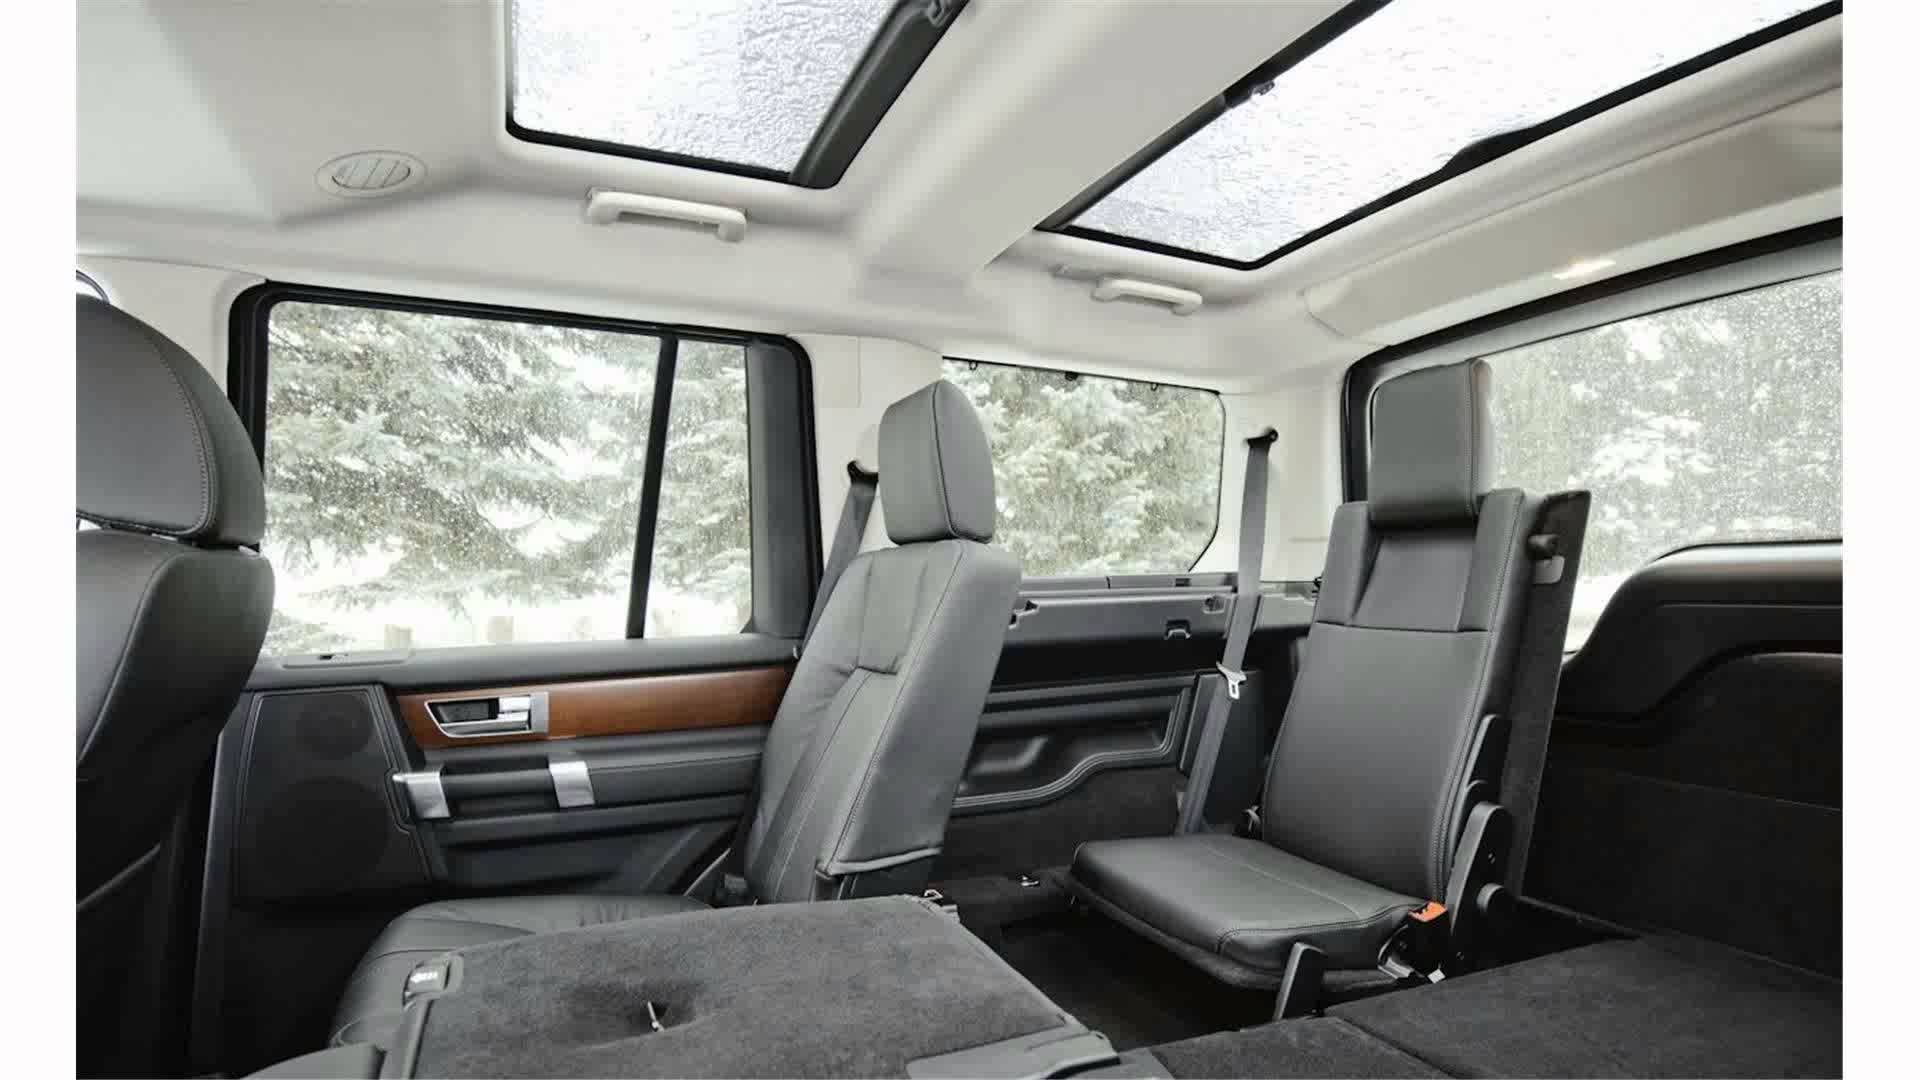 Land Rover LR4 Interior 2015